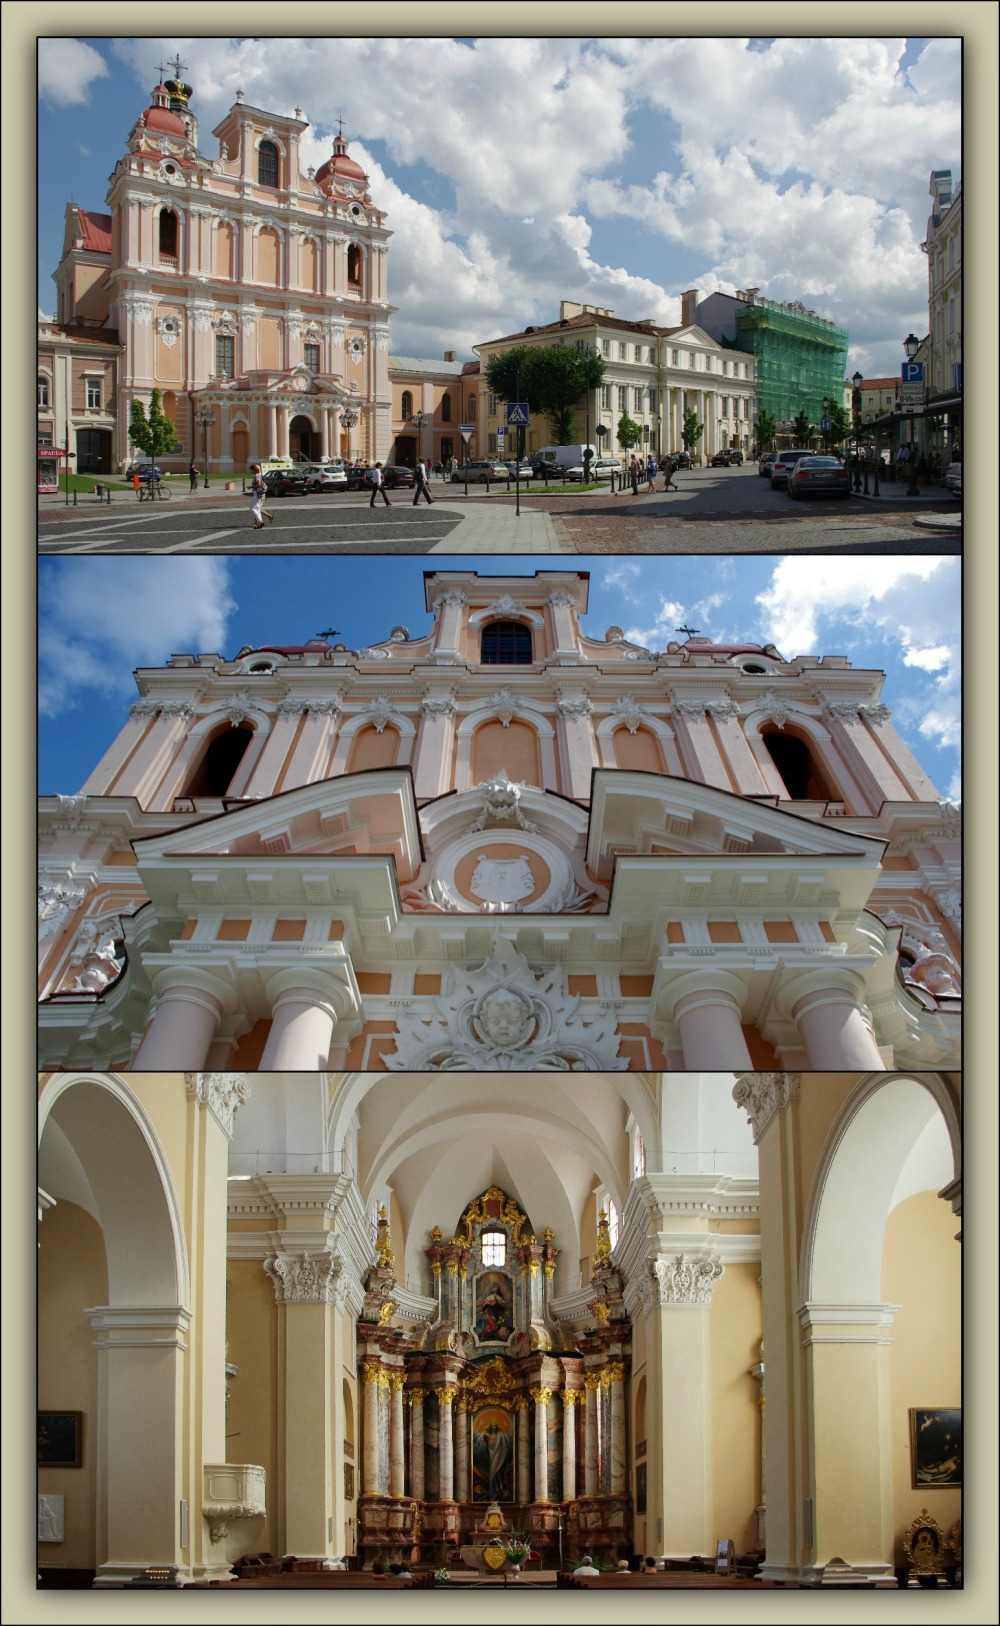 vilnius, old town, st. casimir church, baroque